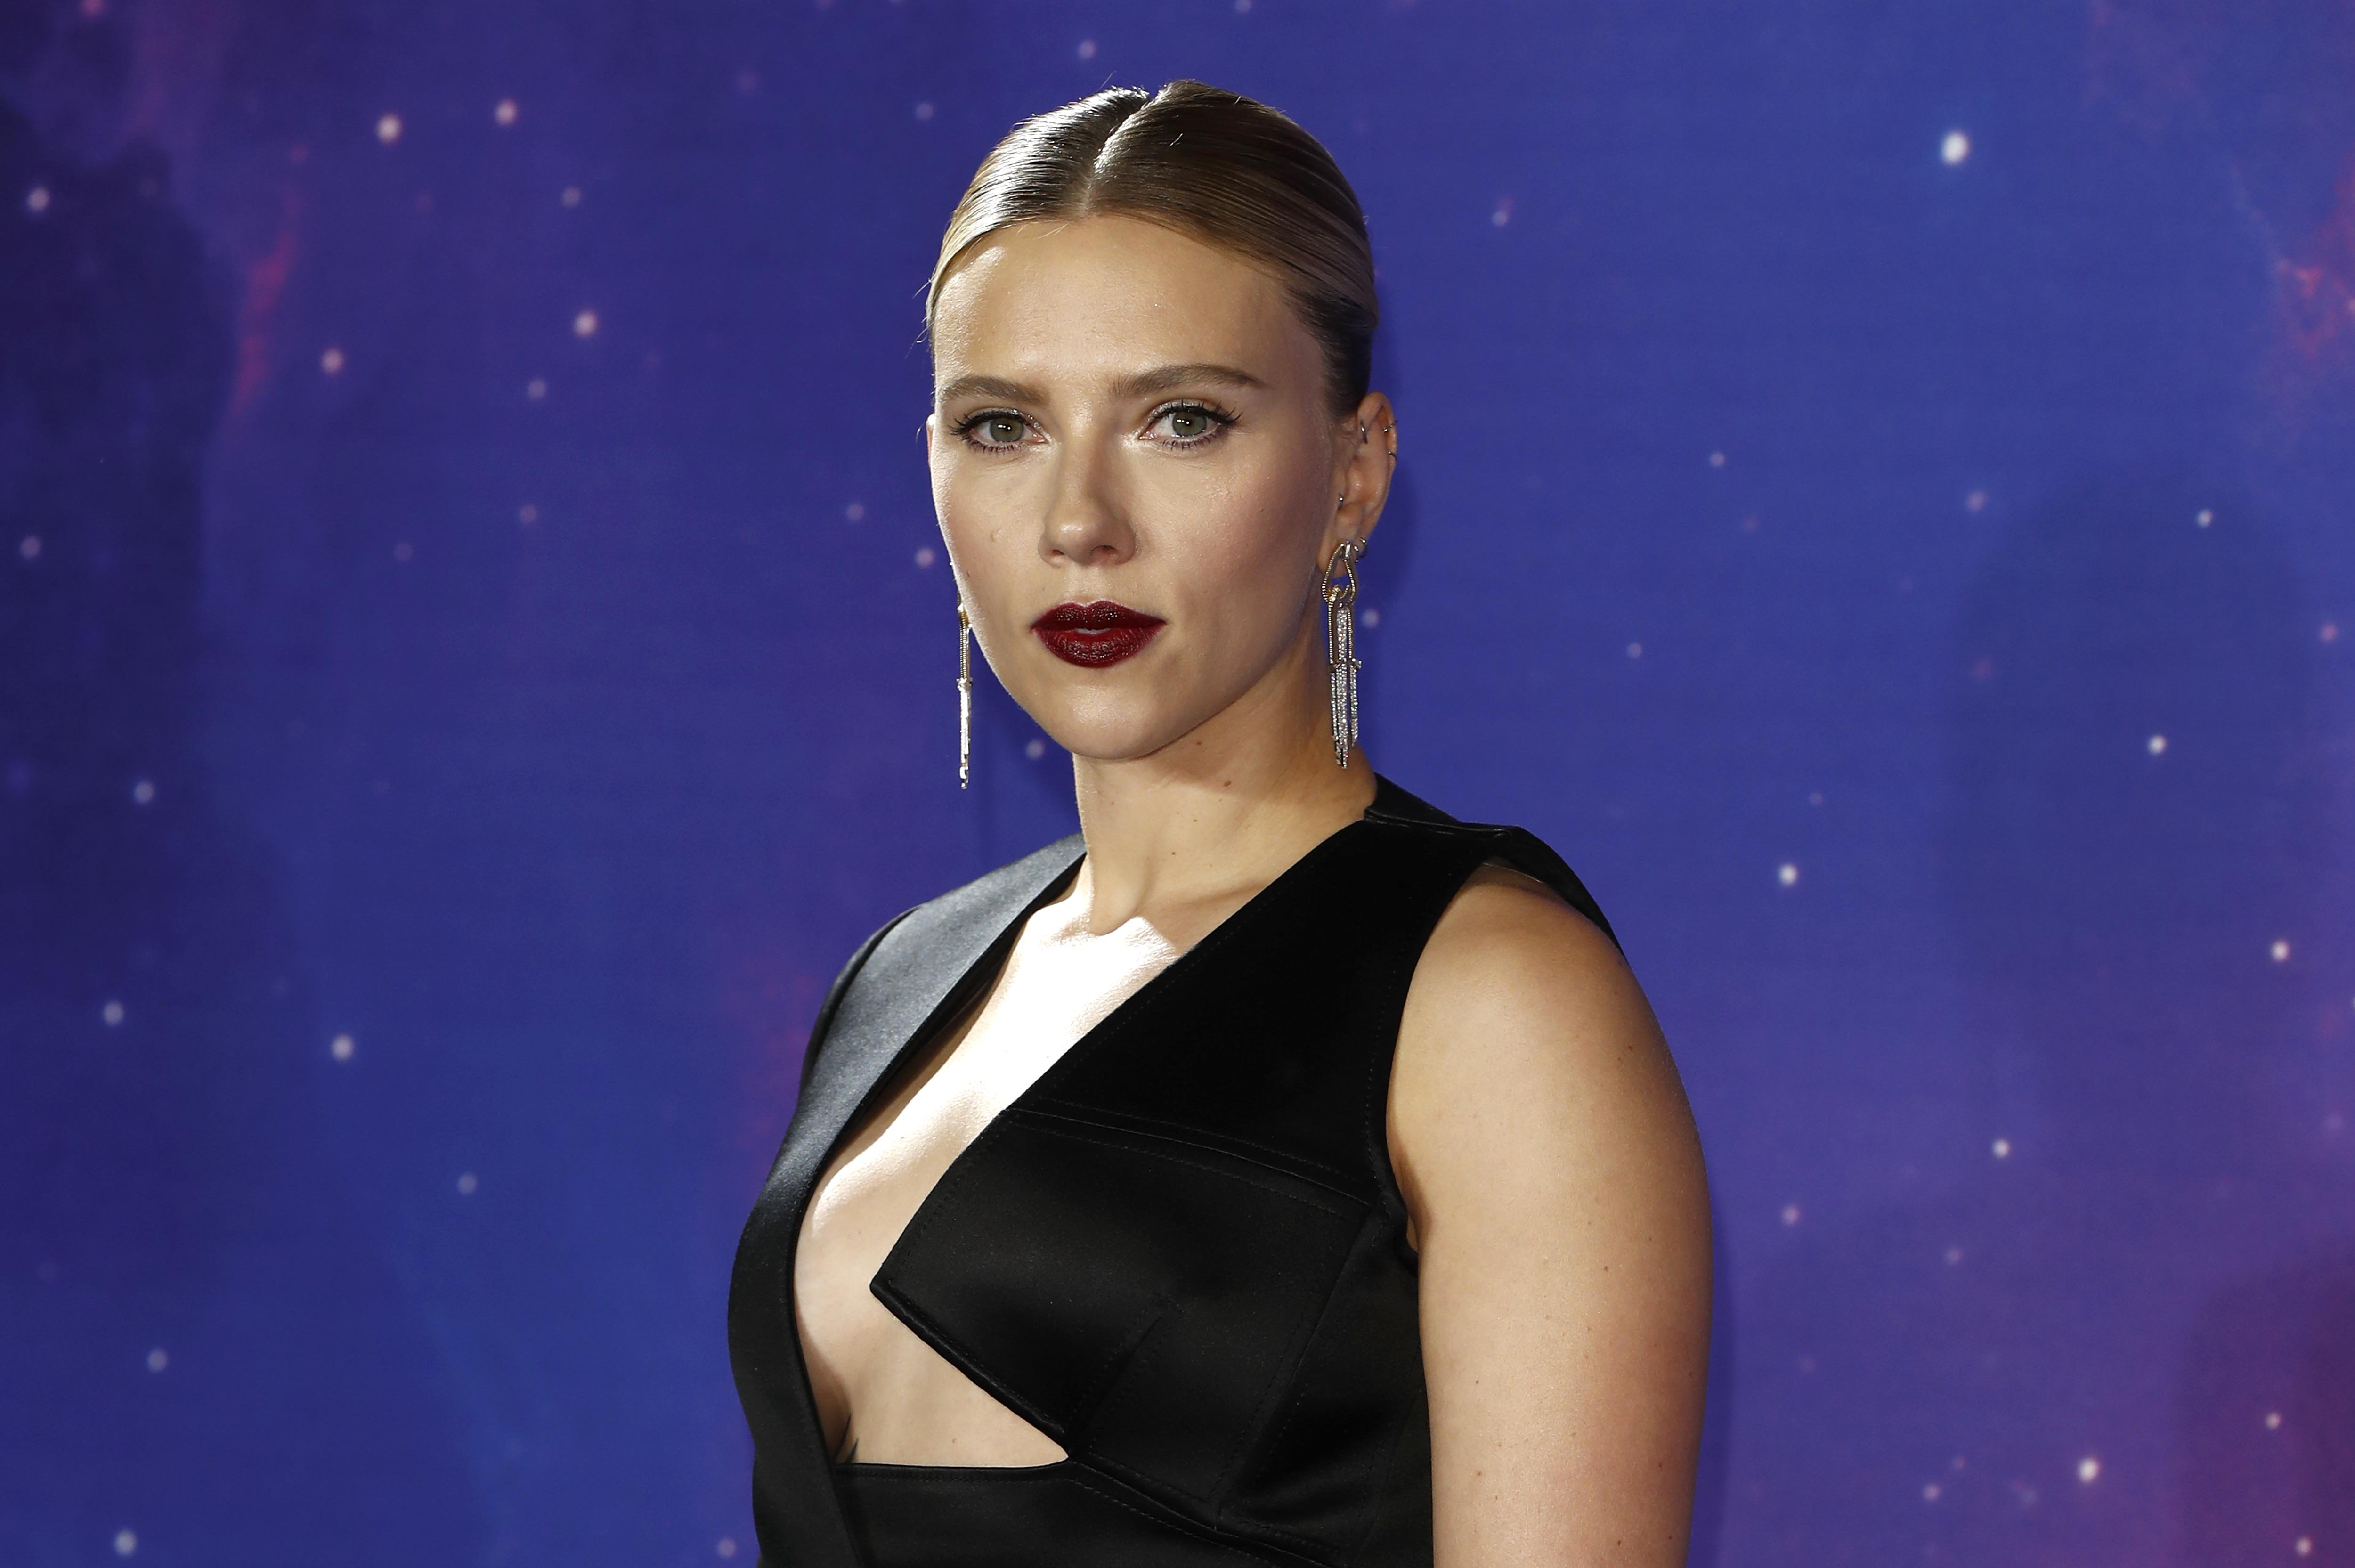 Scarlett Johansson Wows In Sexy Black Widow Inspired Look At Avengers Endgame Fan Event Access